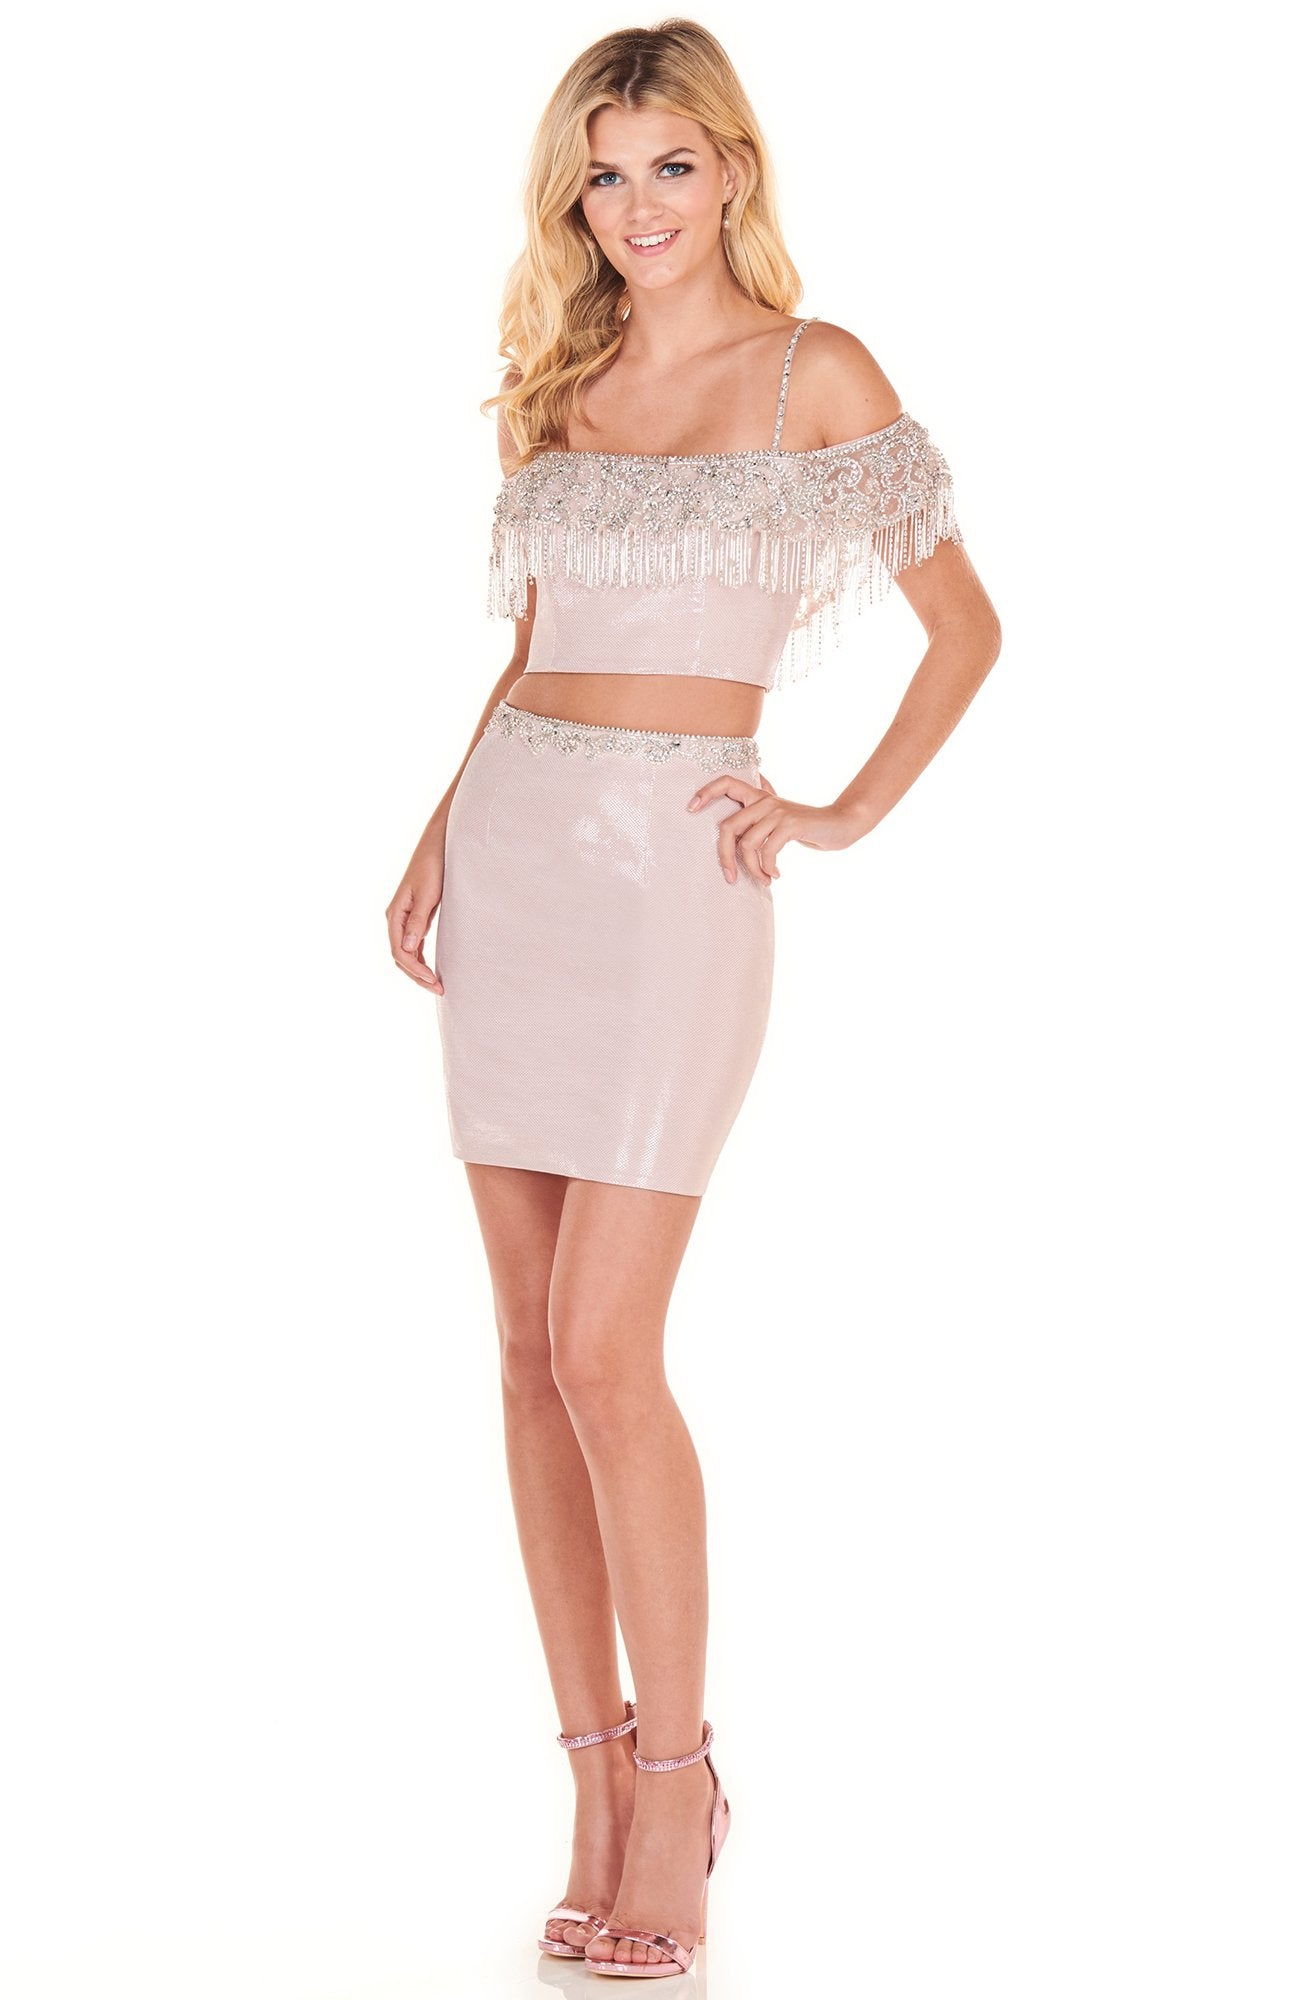 Rachel Allan Homecoming - 4072 Beaded Fringe Two Piece Sheath Dress In Pink and Silver